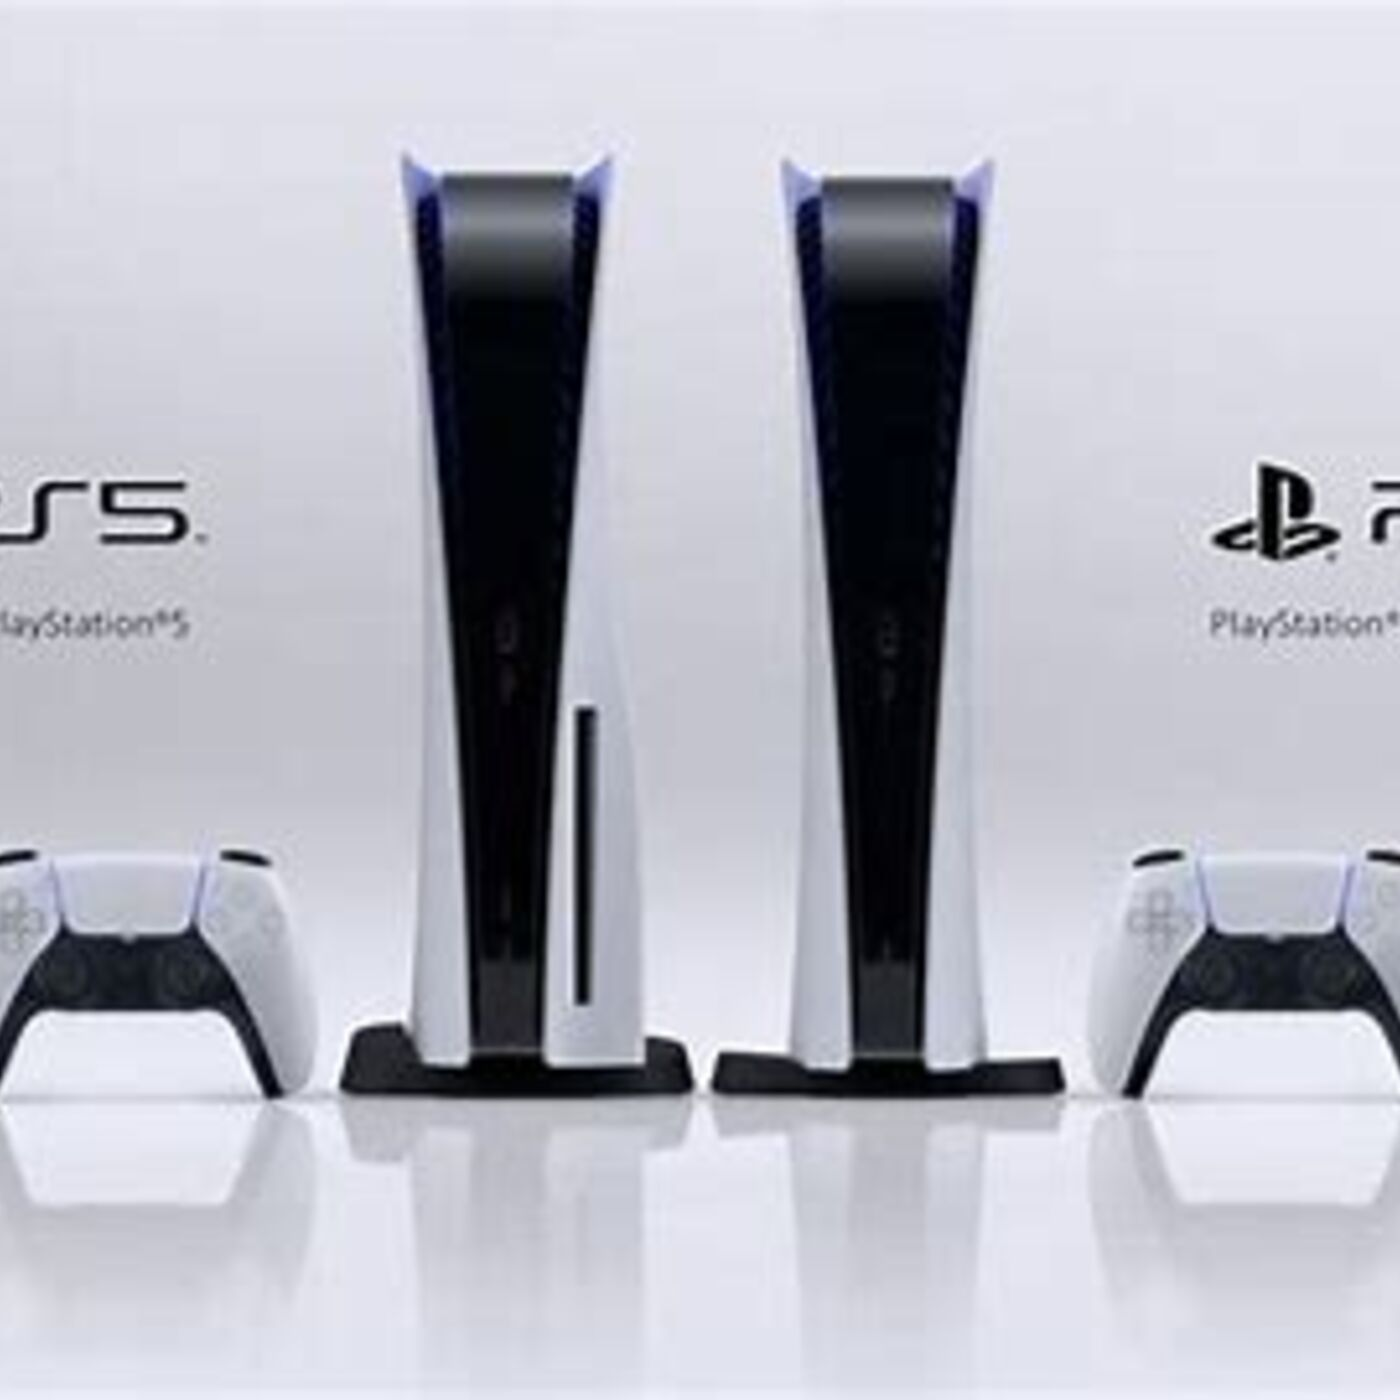 PS5 Release Date & Price